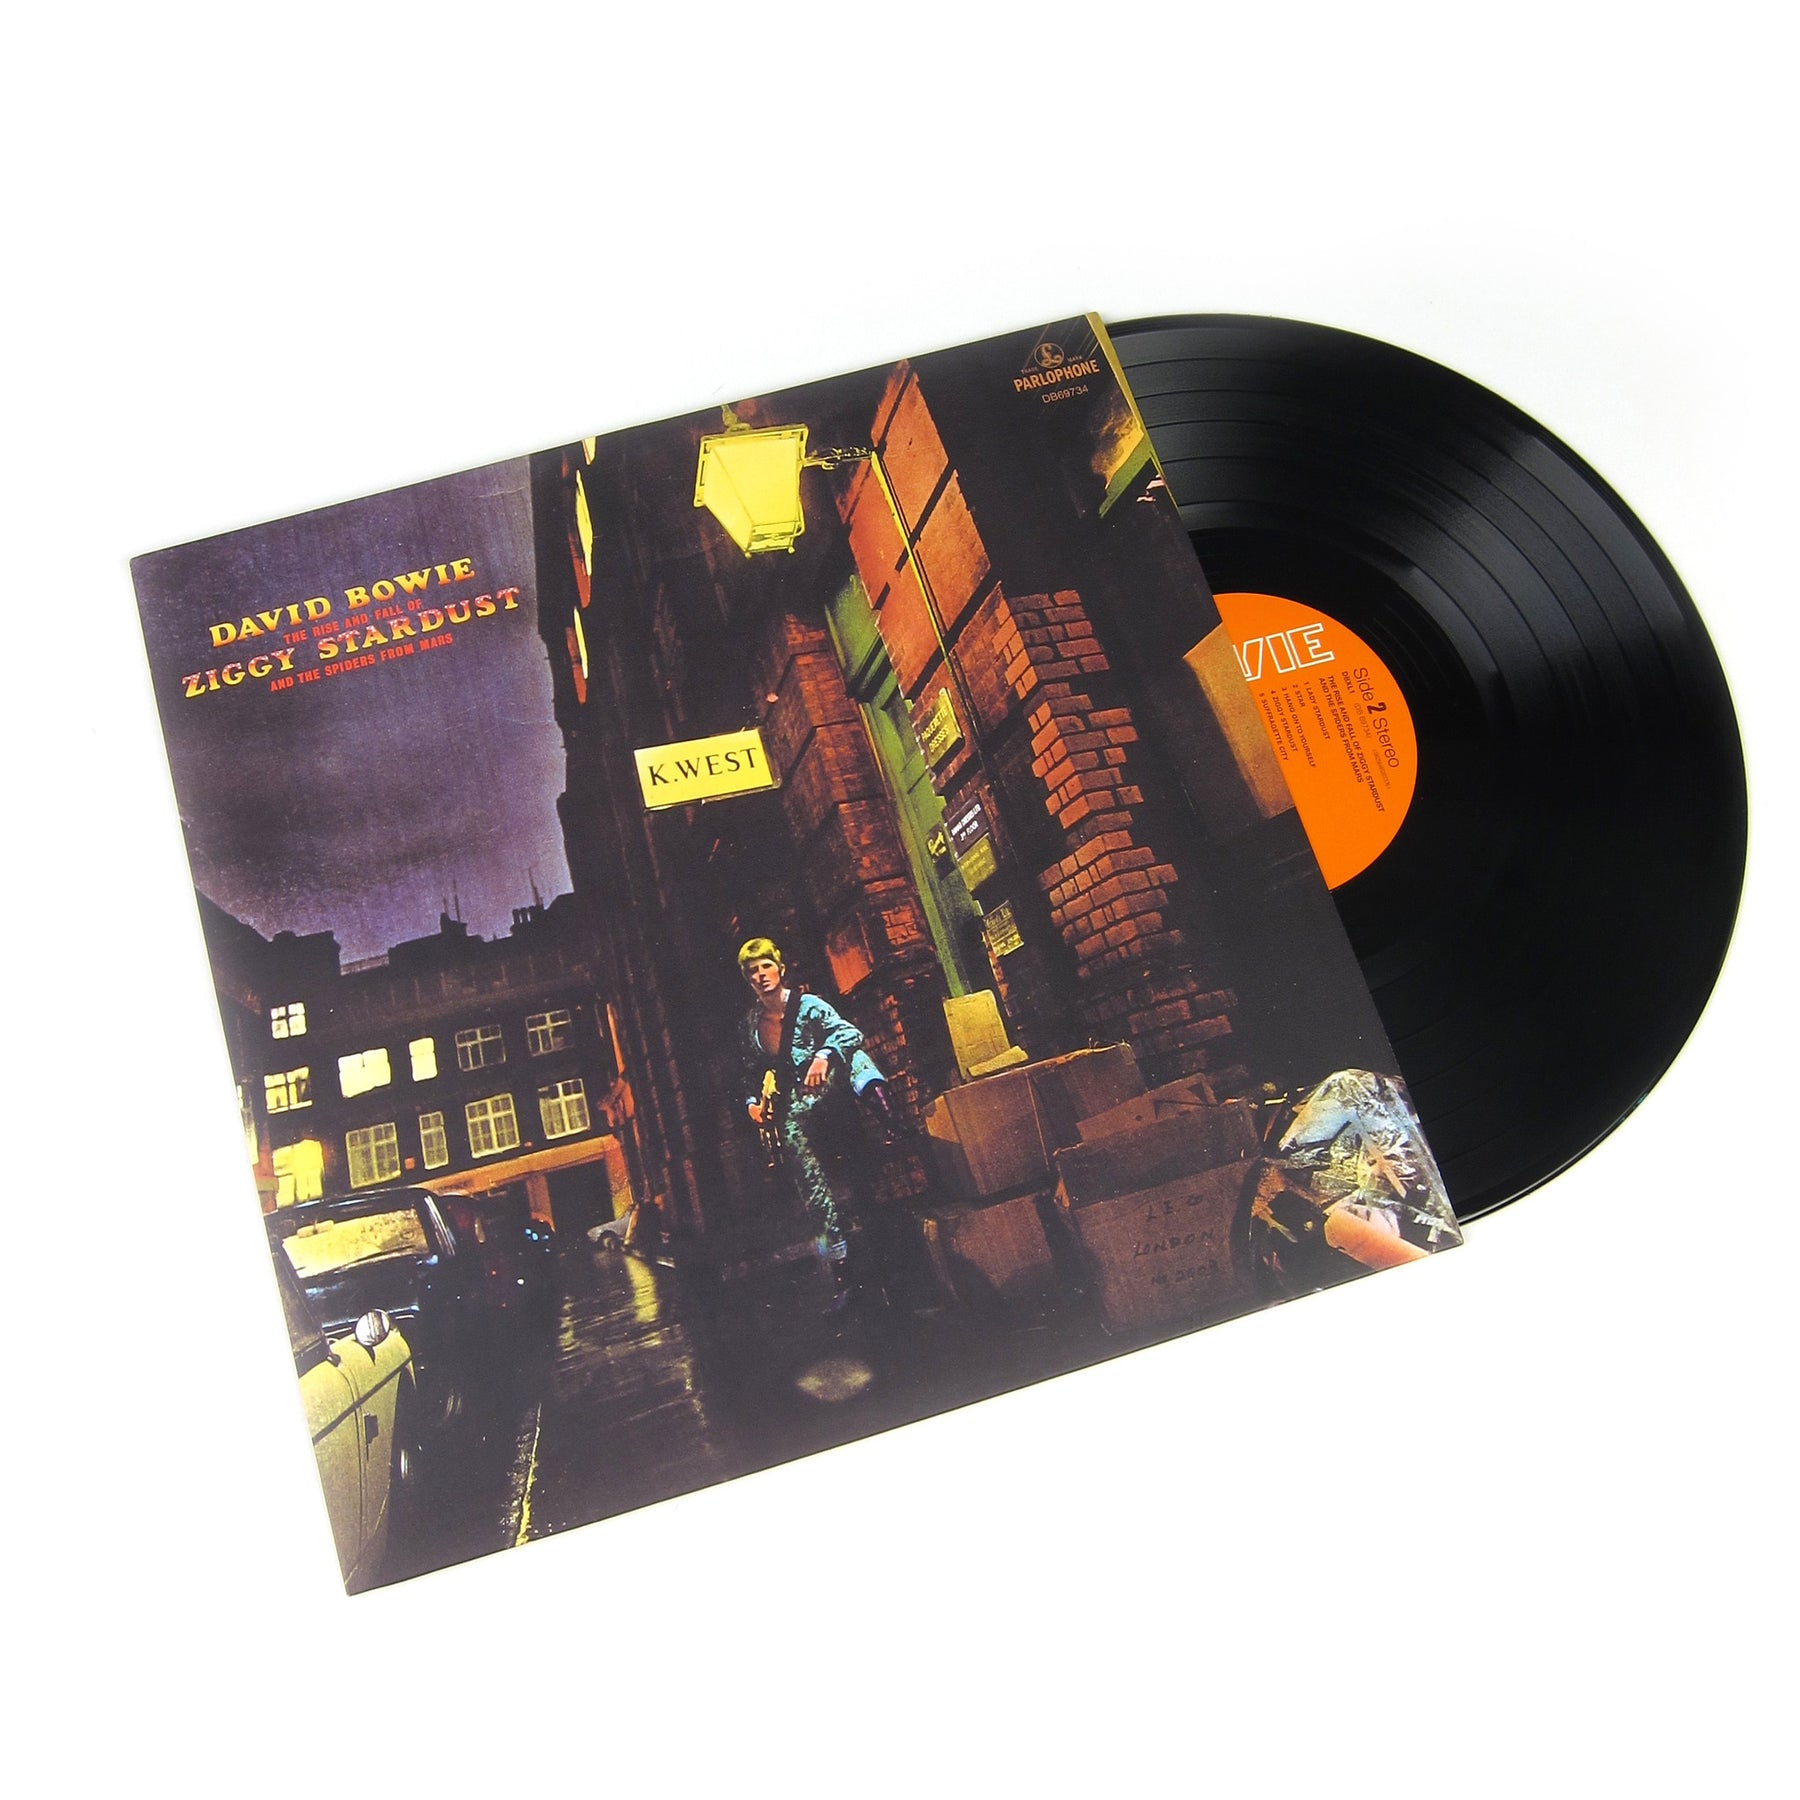 David Bowie The Rise And Fall Of Ziggy Stardust And The Spiders From Mars  (180g) Vinyl LP